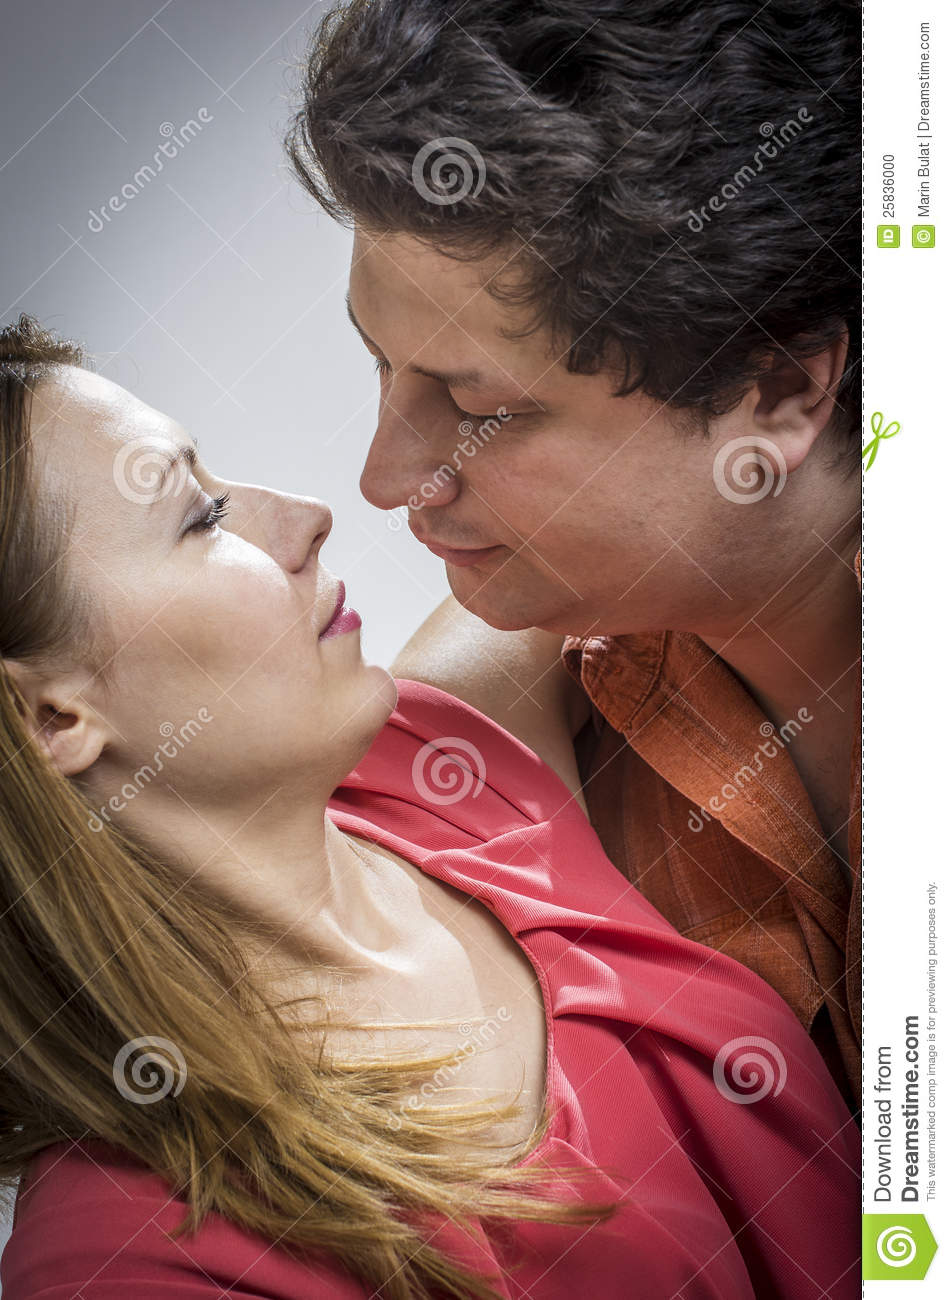 Husband kisses his wife while boyfriend is cumming p 6